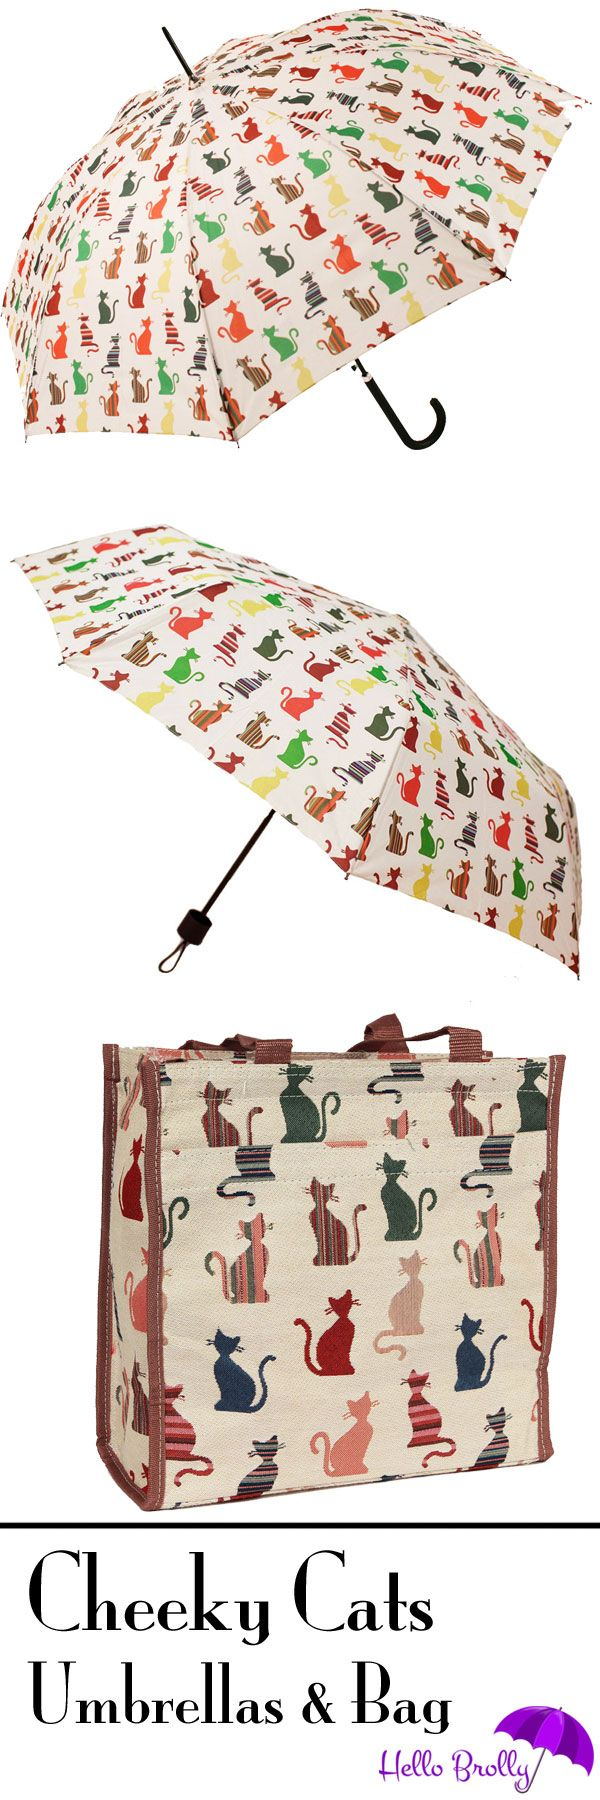 These Signare Cheeky Cats Umbrellas are so cute that we also have a matching Shopping Bag that you can buy. the brollies come in both folding and long stick styles. A perfect present for any cat lover. Buy from http://www.hellobrolly.co.uk/animal-birds-umbrellas/signare-cheeky-cat-umbrellas-bag-set